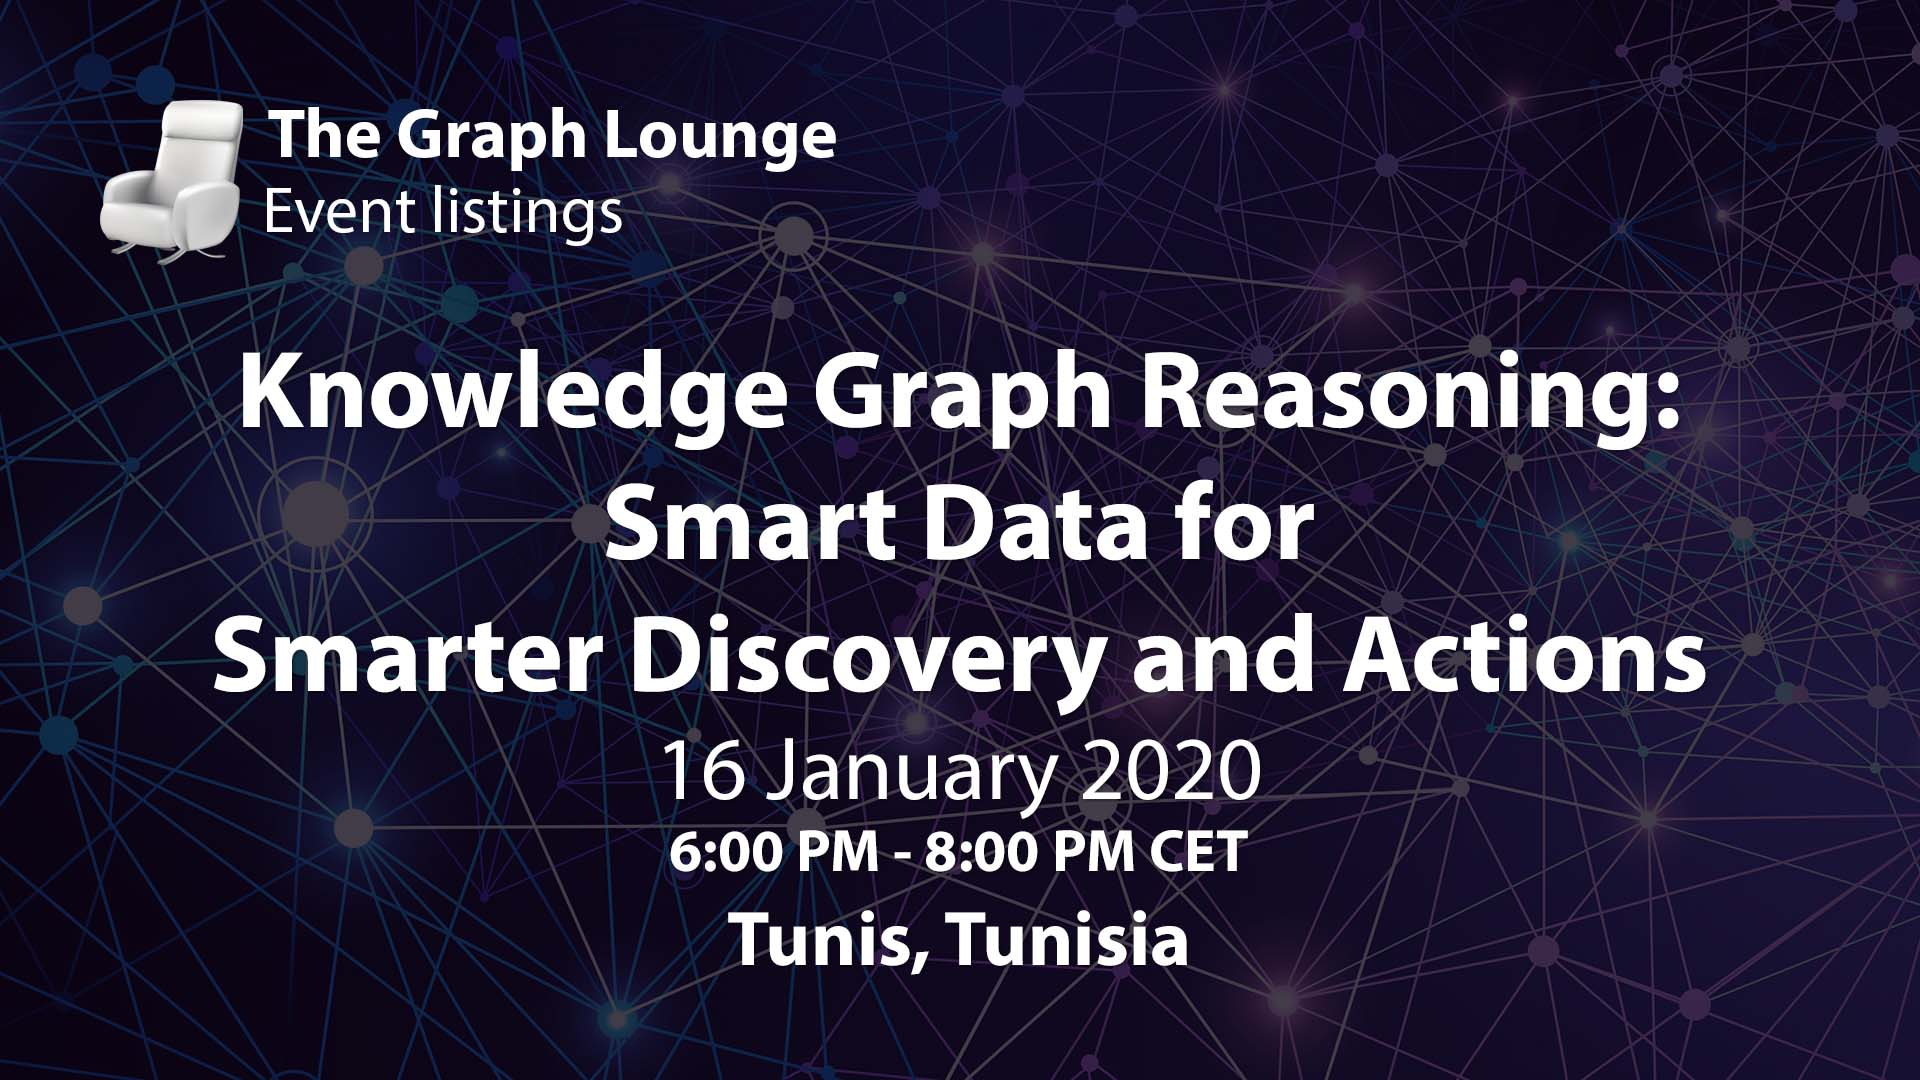 Knowledge Graph Reasoning: Smart Data for Smarter Discovery and Actions